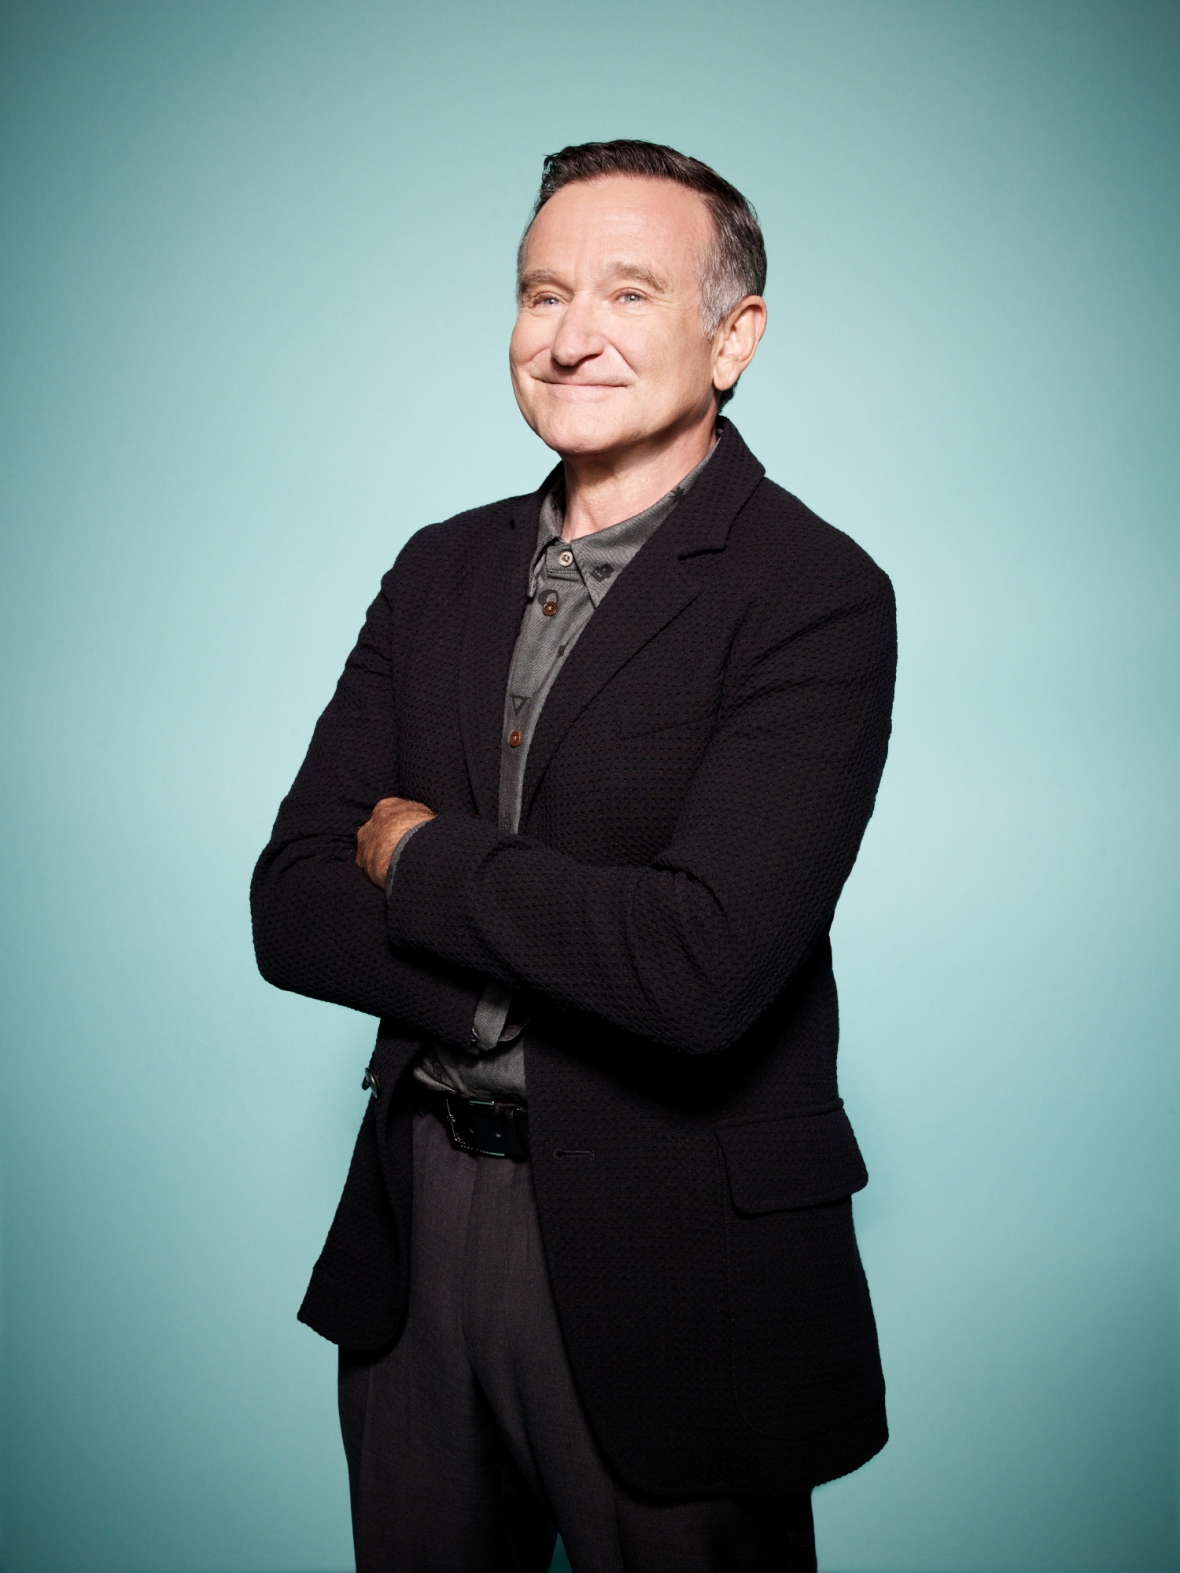 robin williams getty images